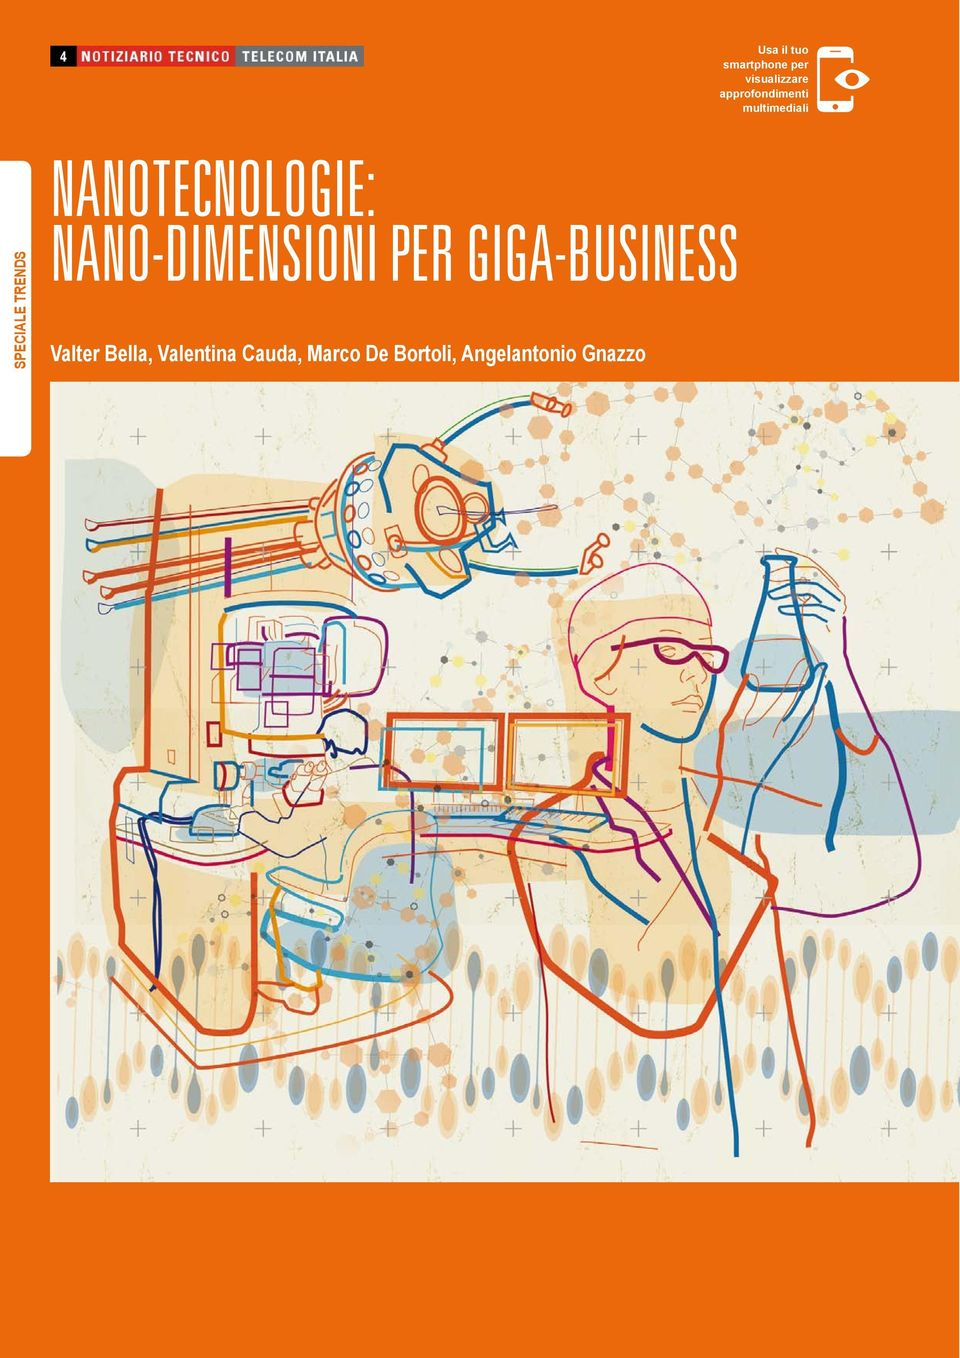 NANO-DIMENSIONI PER GIGA-BUSINESS Valter